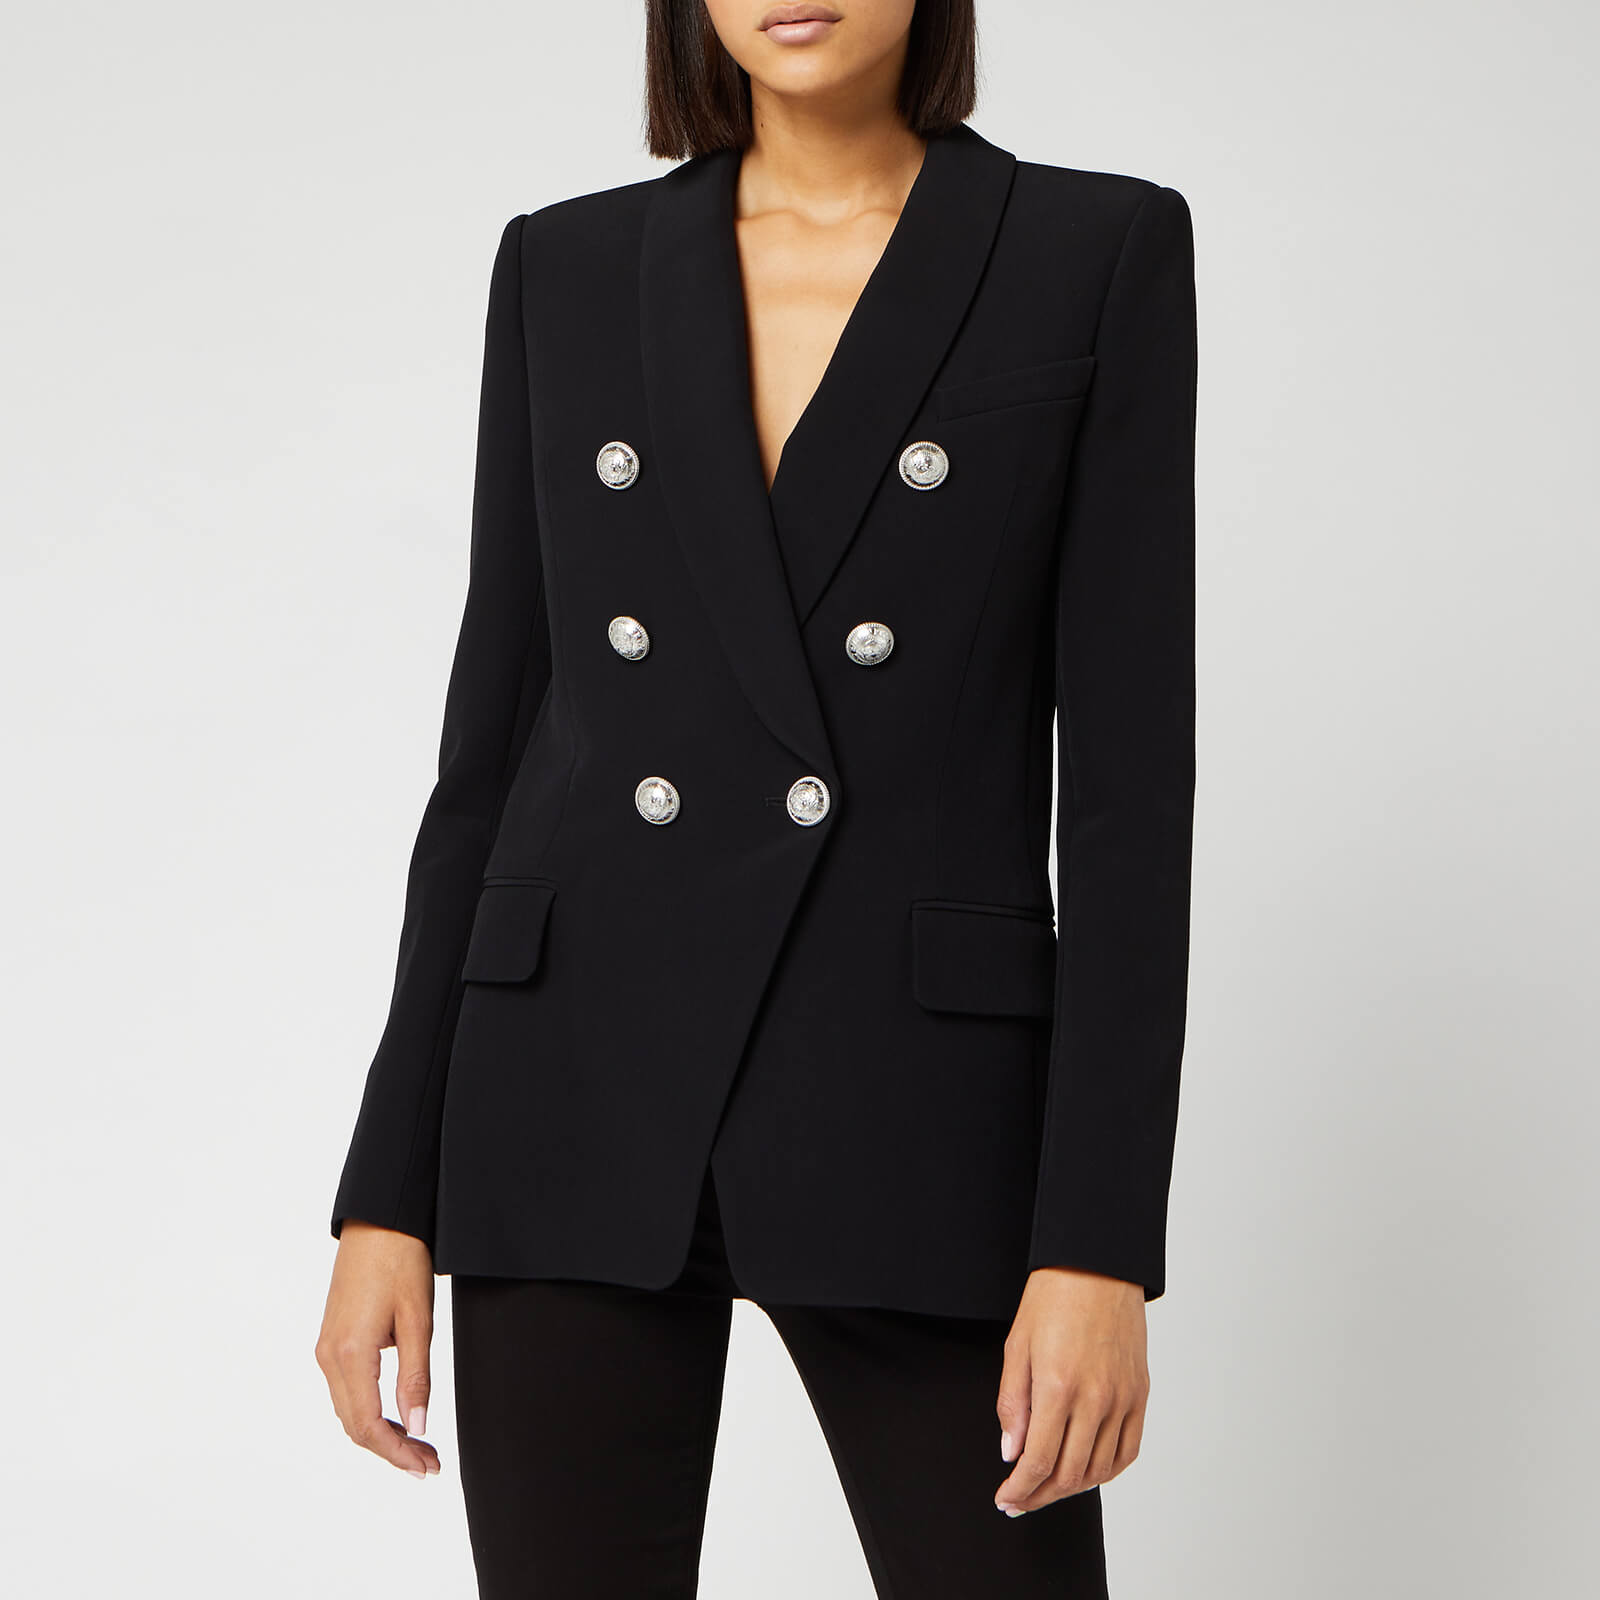 Balmain Women's Oversized 6 Button Crepe Jacket - Black - FR 34/UK 6